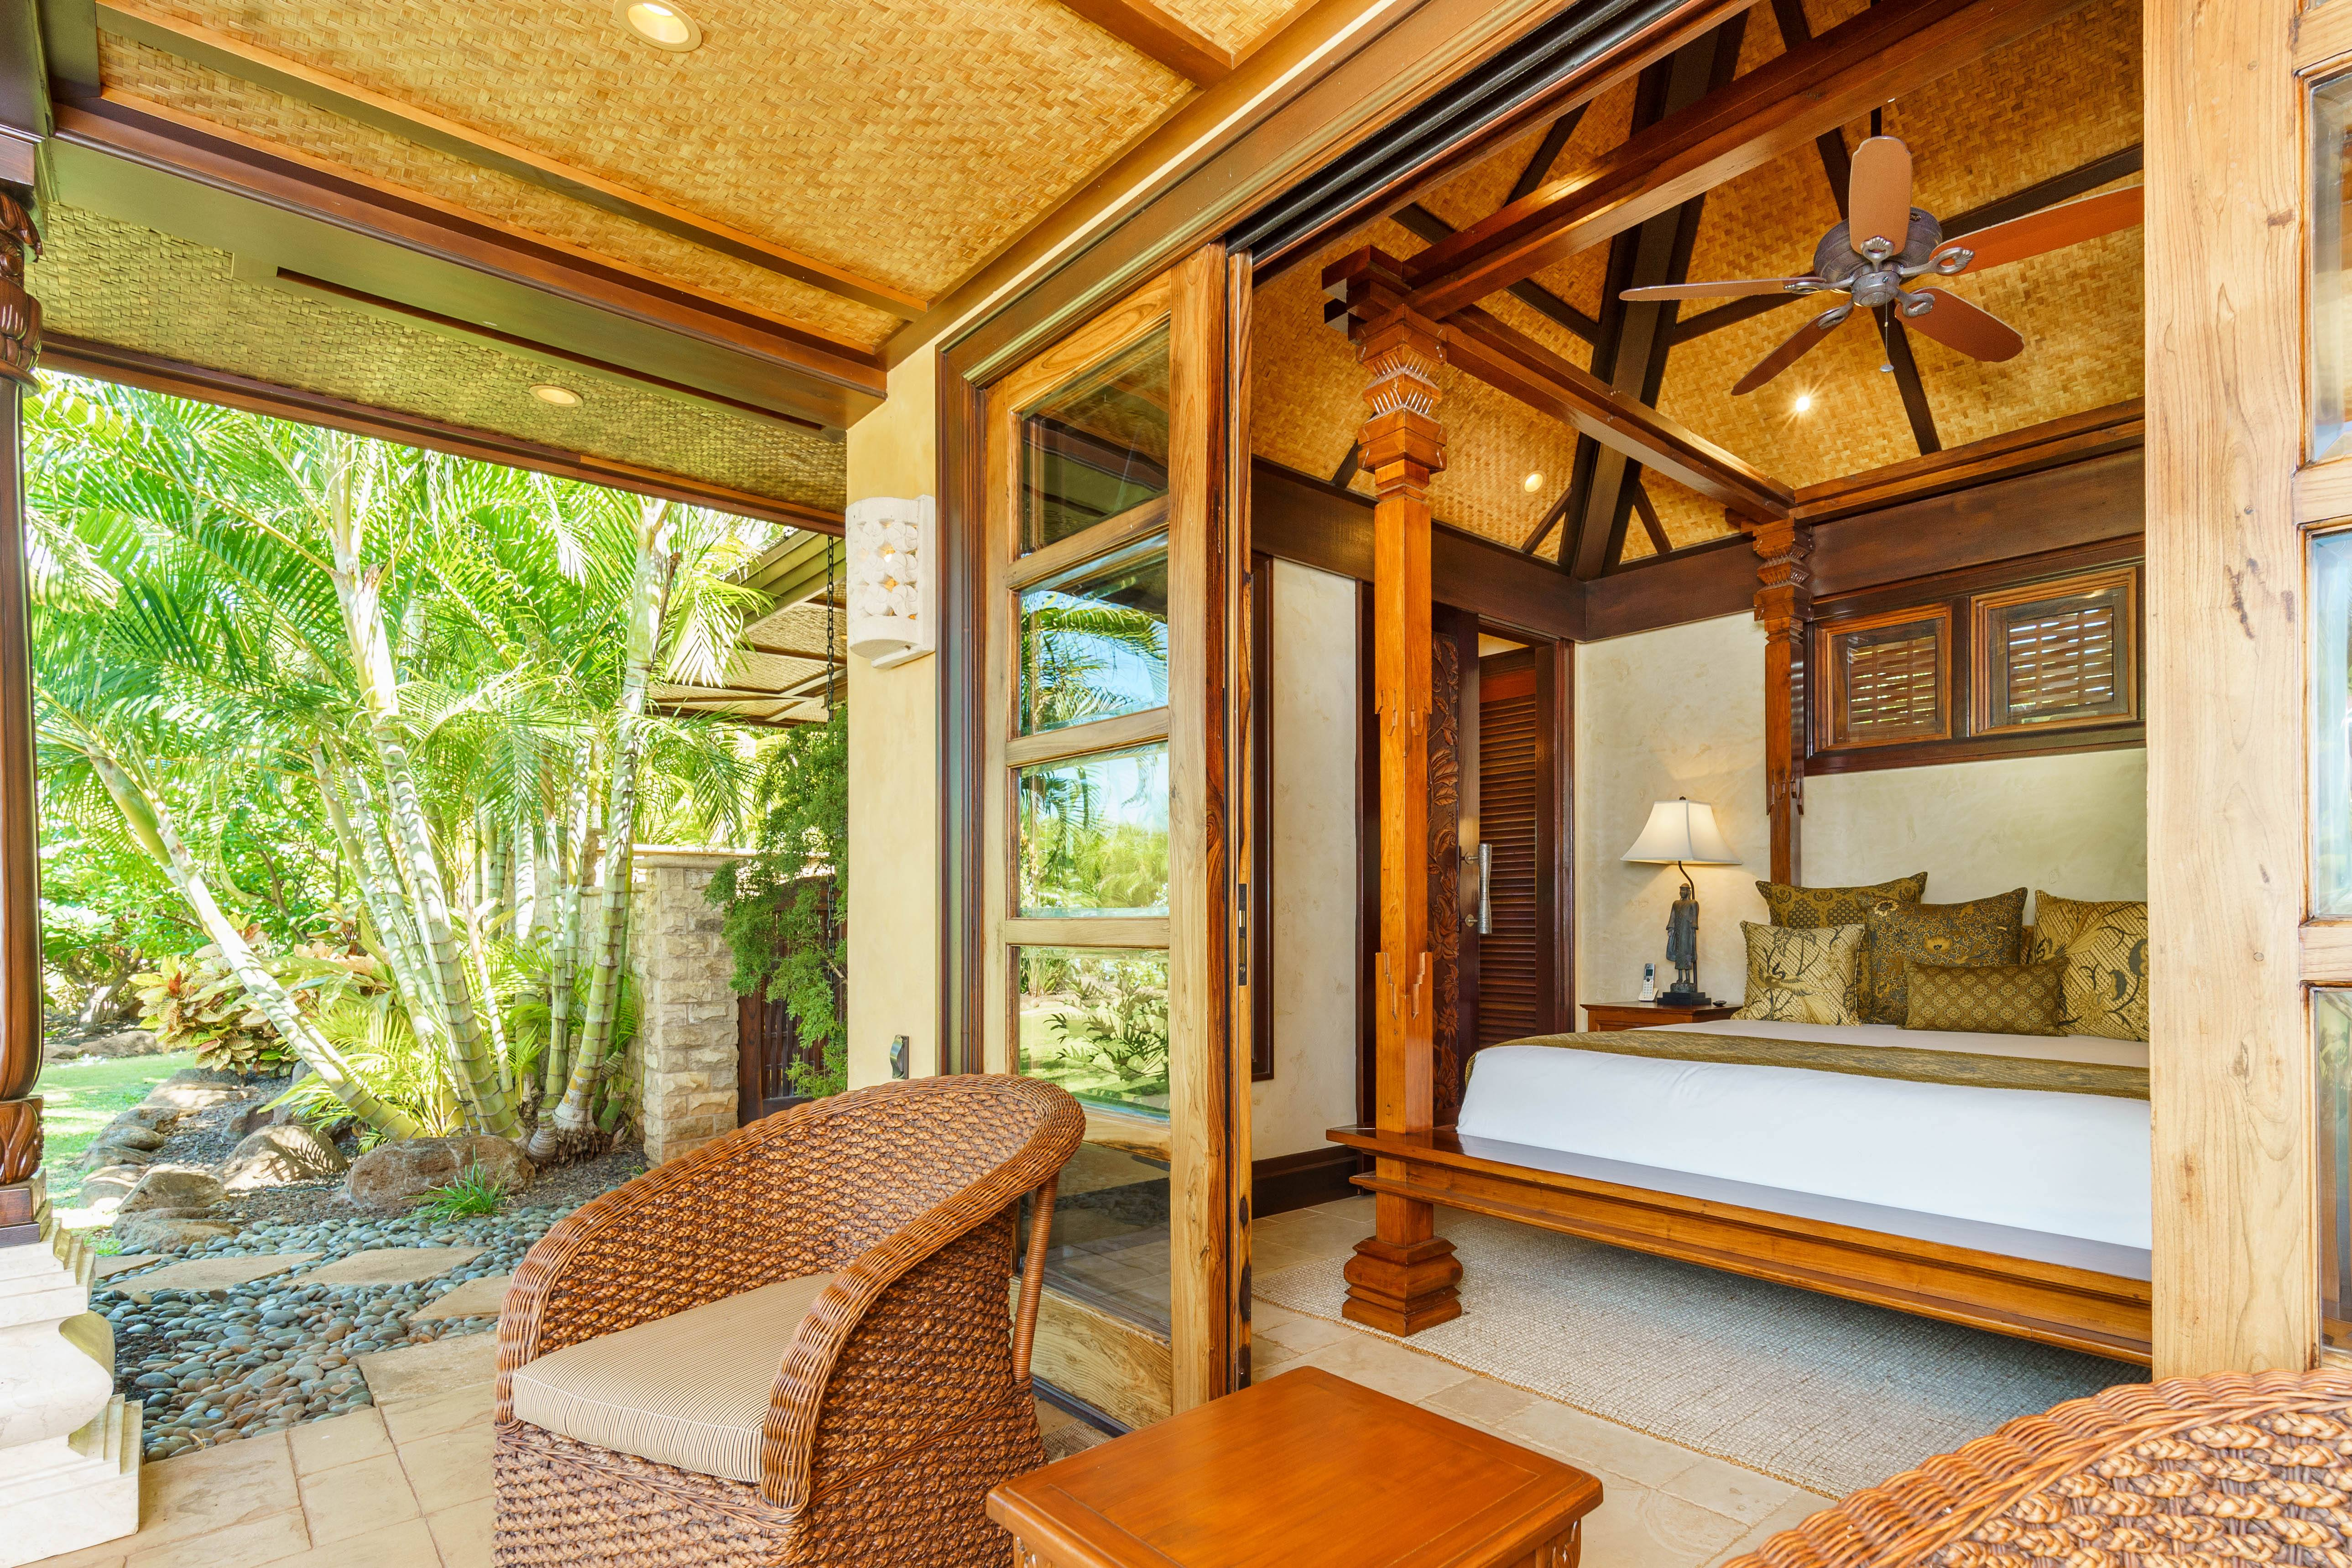 indoor-outdoor living at Balinese-style estate in Launiupoko maui